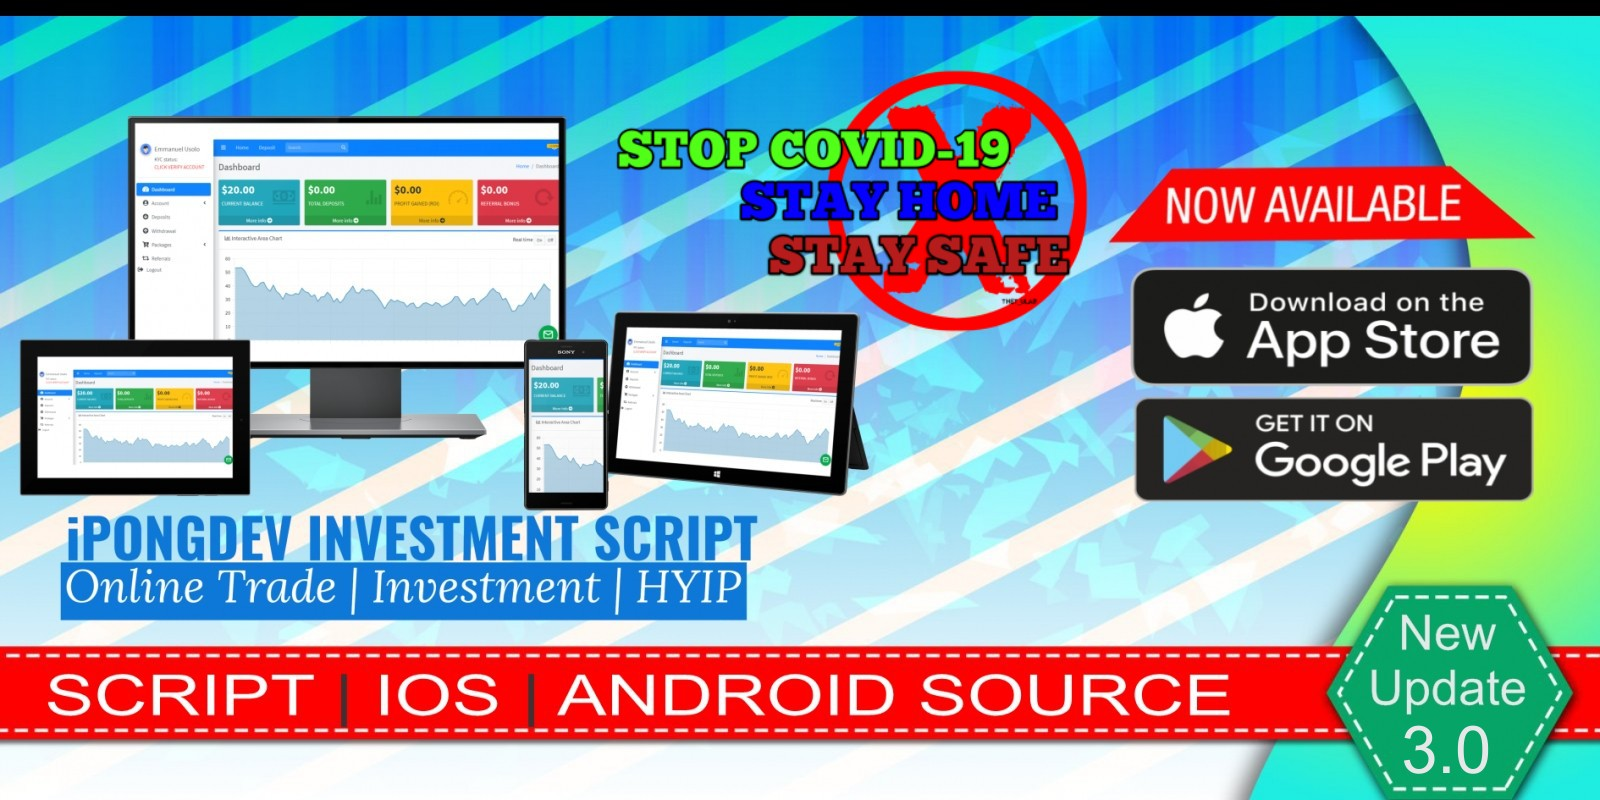 iPongdev Investment And Trading Script